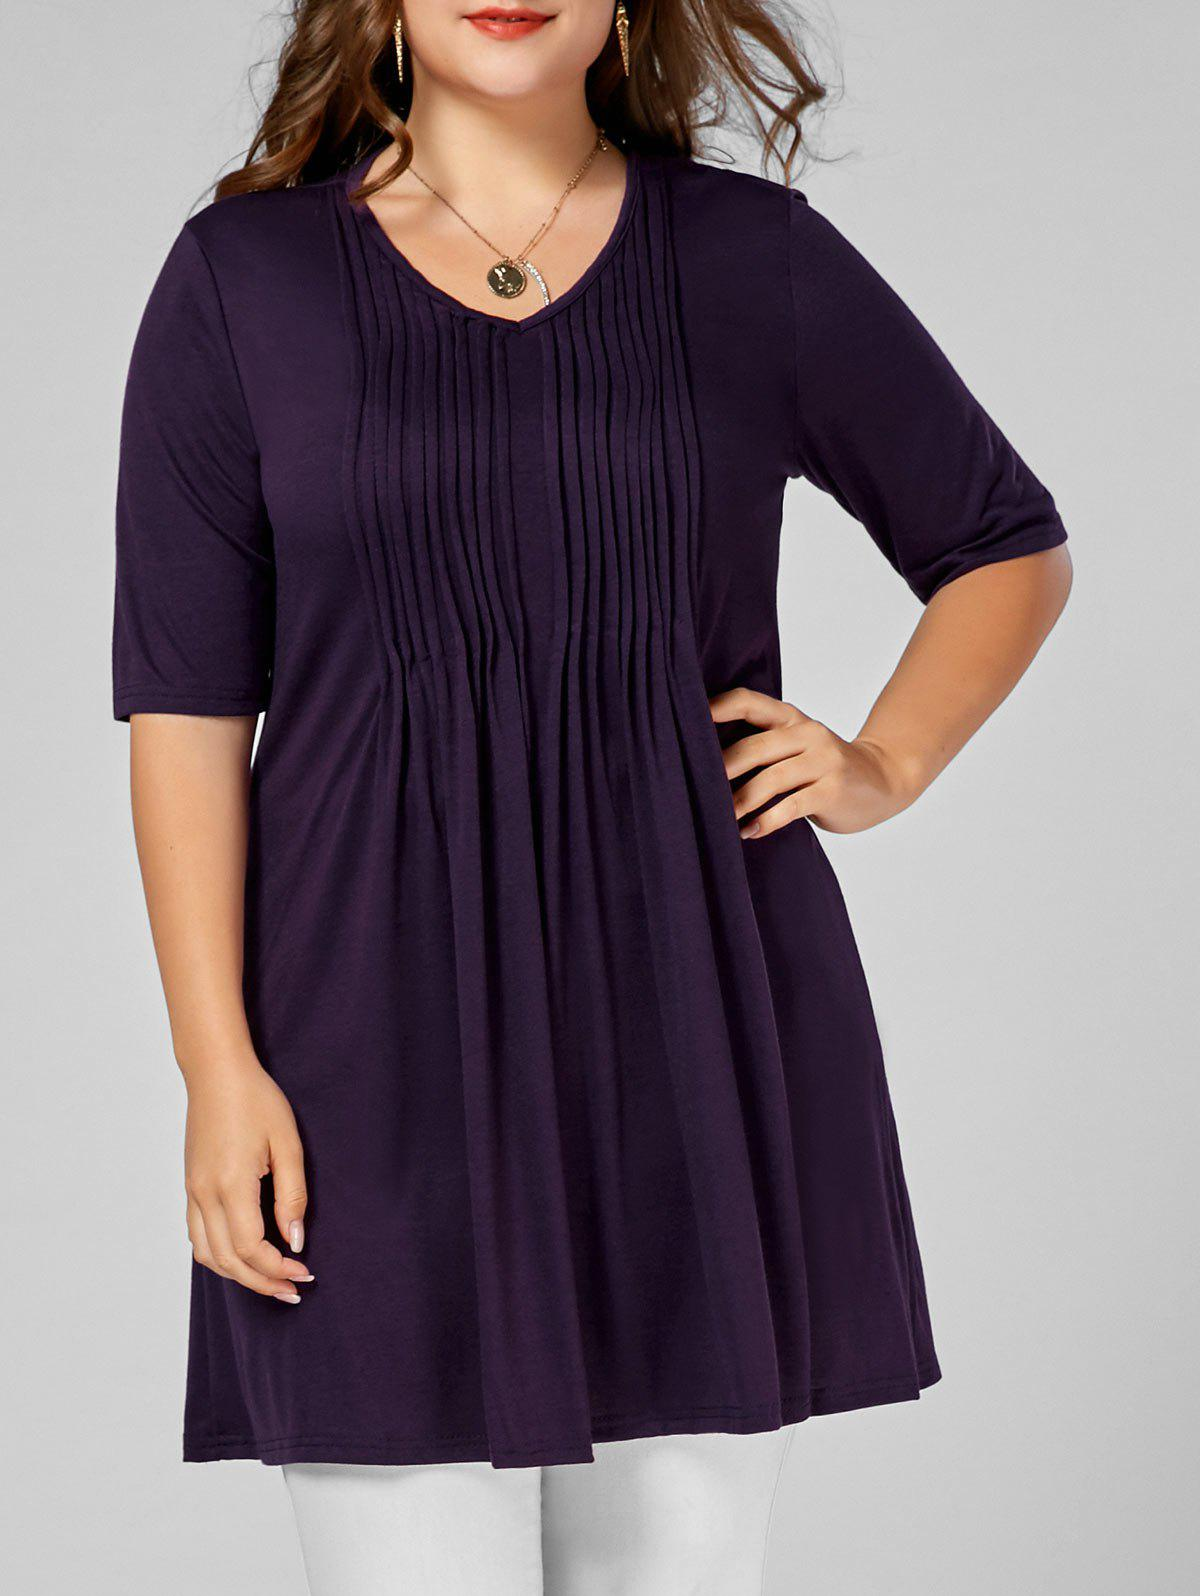 Pleated V Neck Plus Size Tunic TeeWOMEN<br><br>Size: 2XL; Color: DEEP PURPLE; Material: Polyester; Shirt Length: Long; Sleeve Length: Short; Collar: Round Neck; Style: Casual; Season: Summer; Pattern Type: Solid; Weight: 0.3200kg; Package Contents: 1 x Tee;